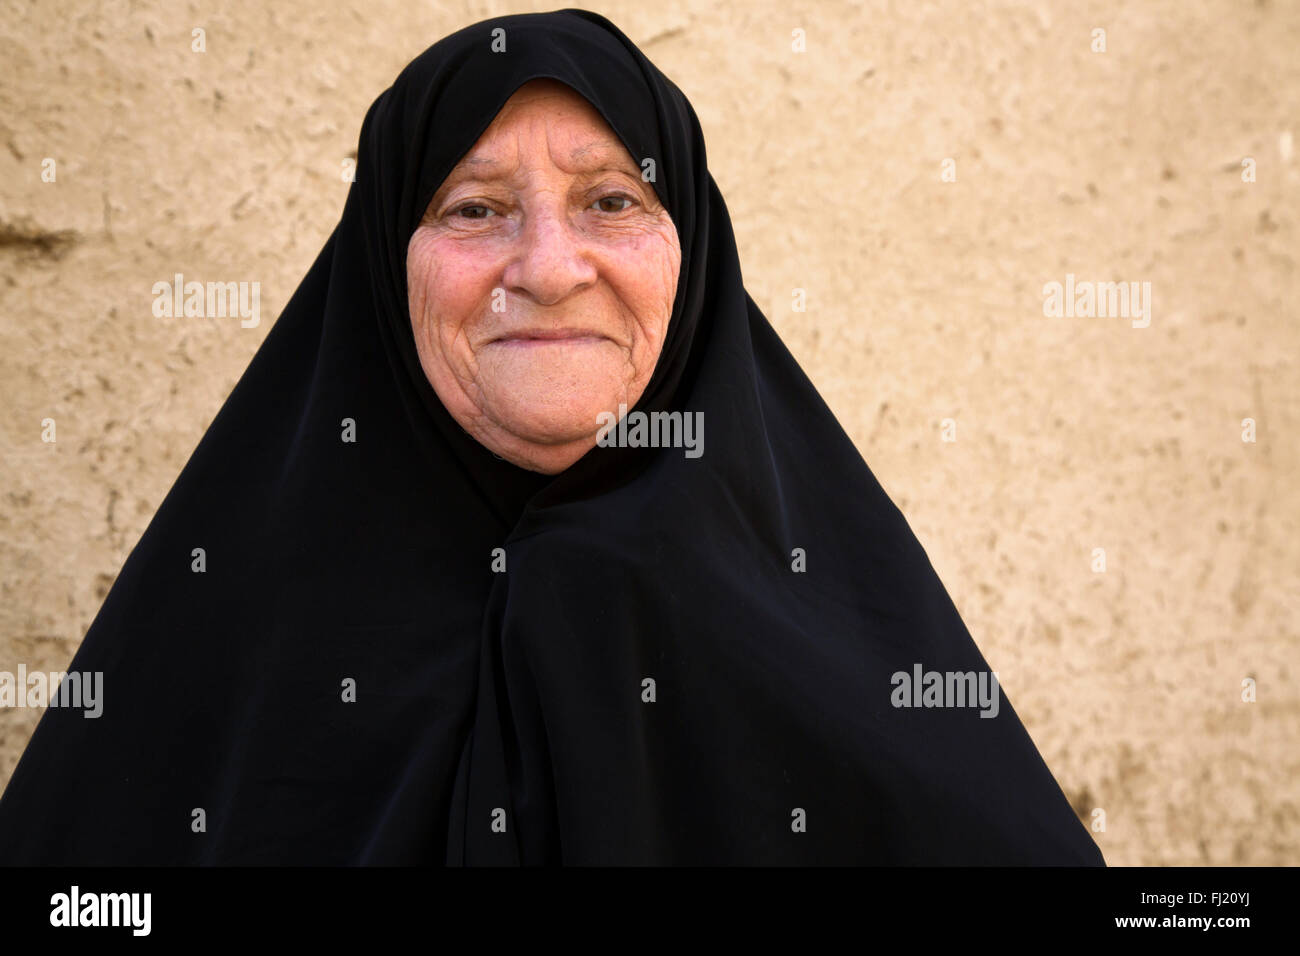 Portrait of old Iranian woman covered with traditonal black hijab islamic veil in Yazd, Iran - Stock Image